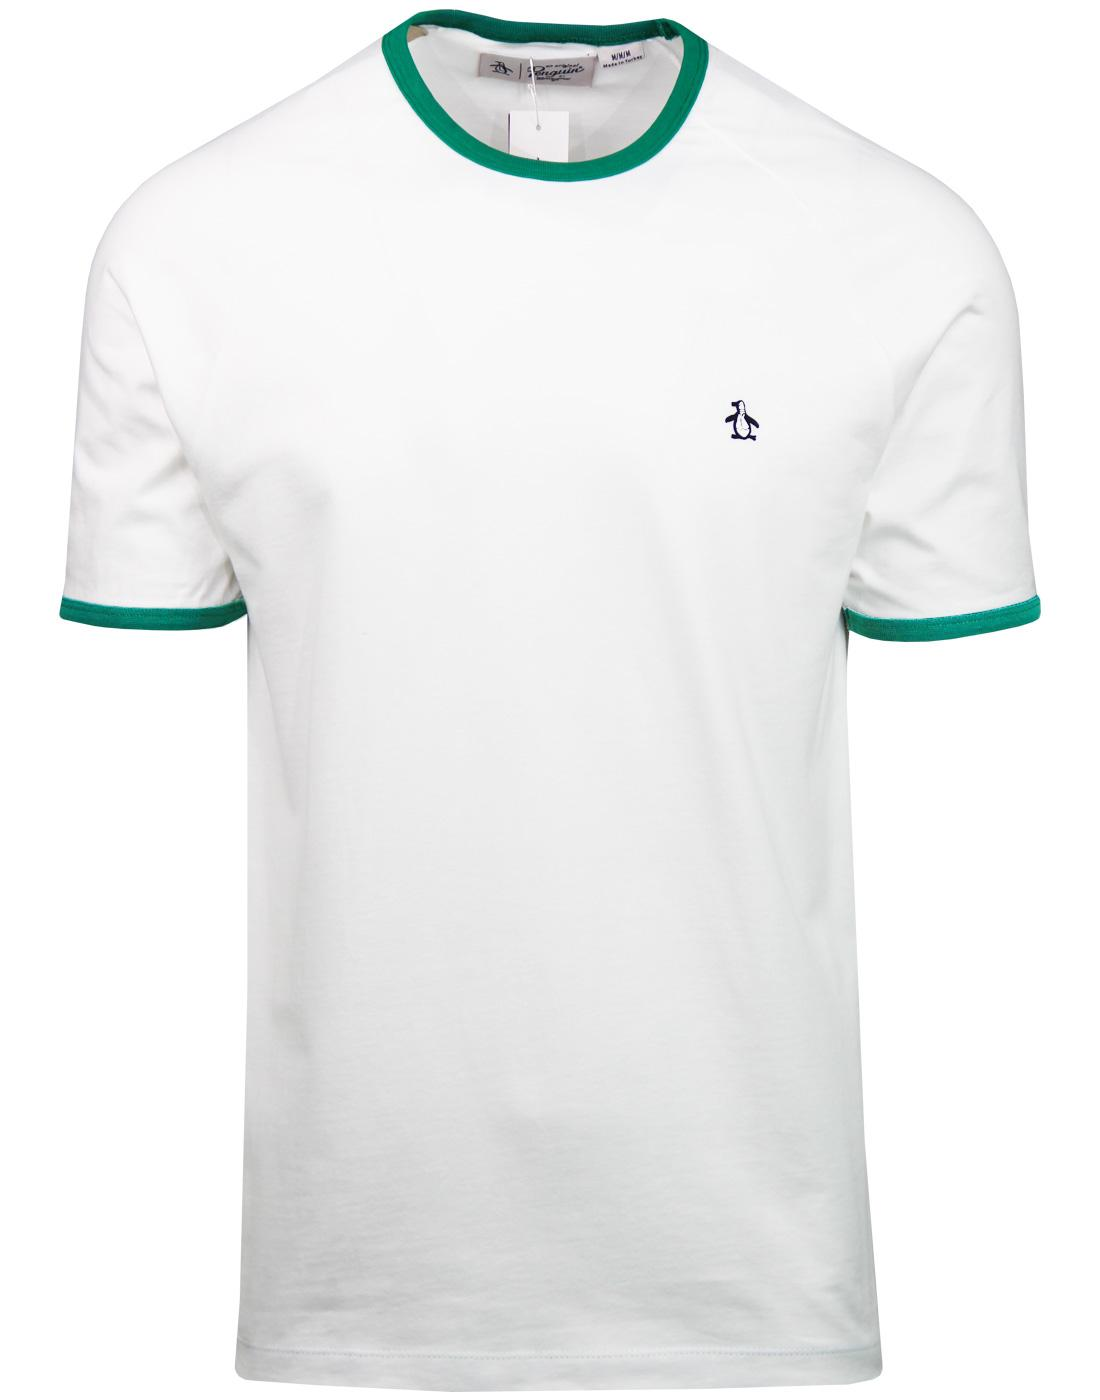 ORIGINAL PENGUIN Retro Ringer T-shirt WHITE/GREEN